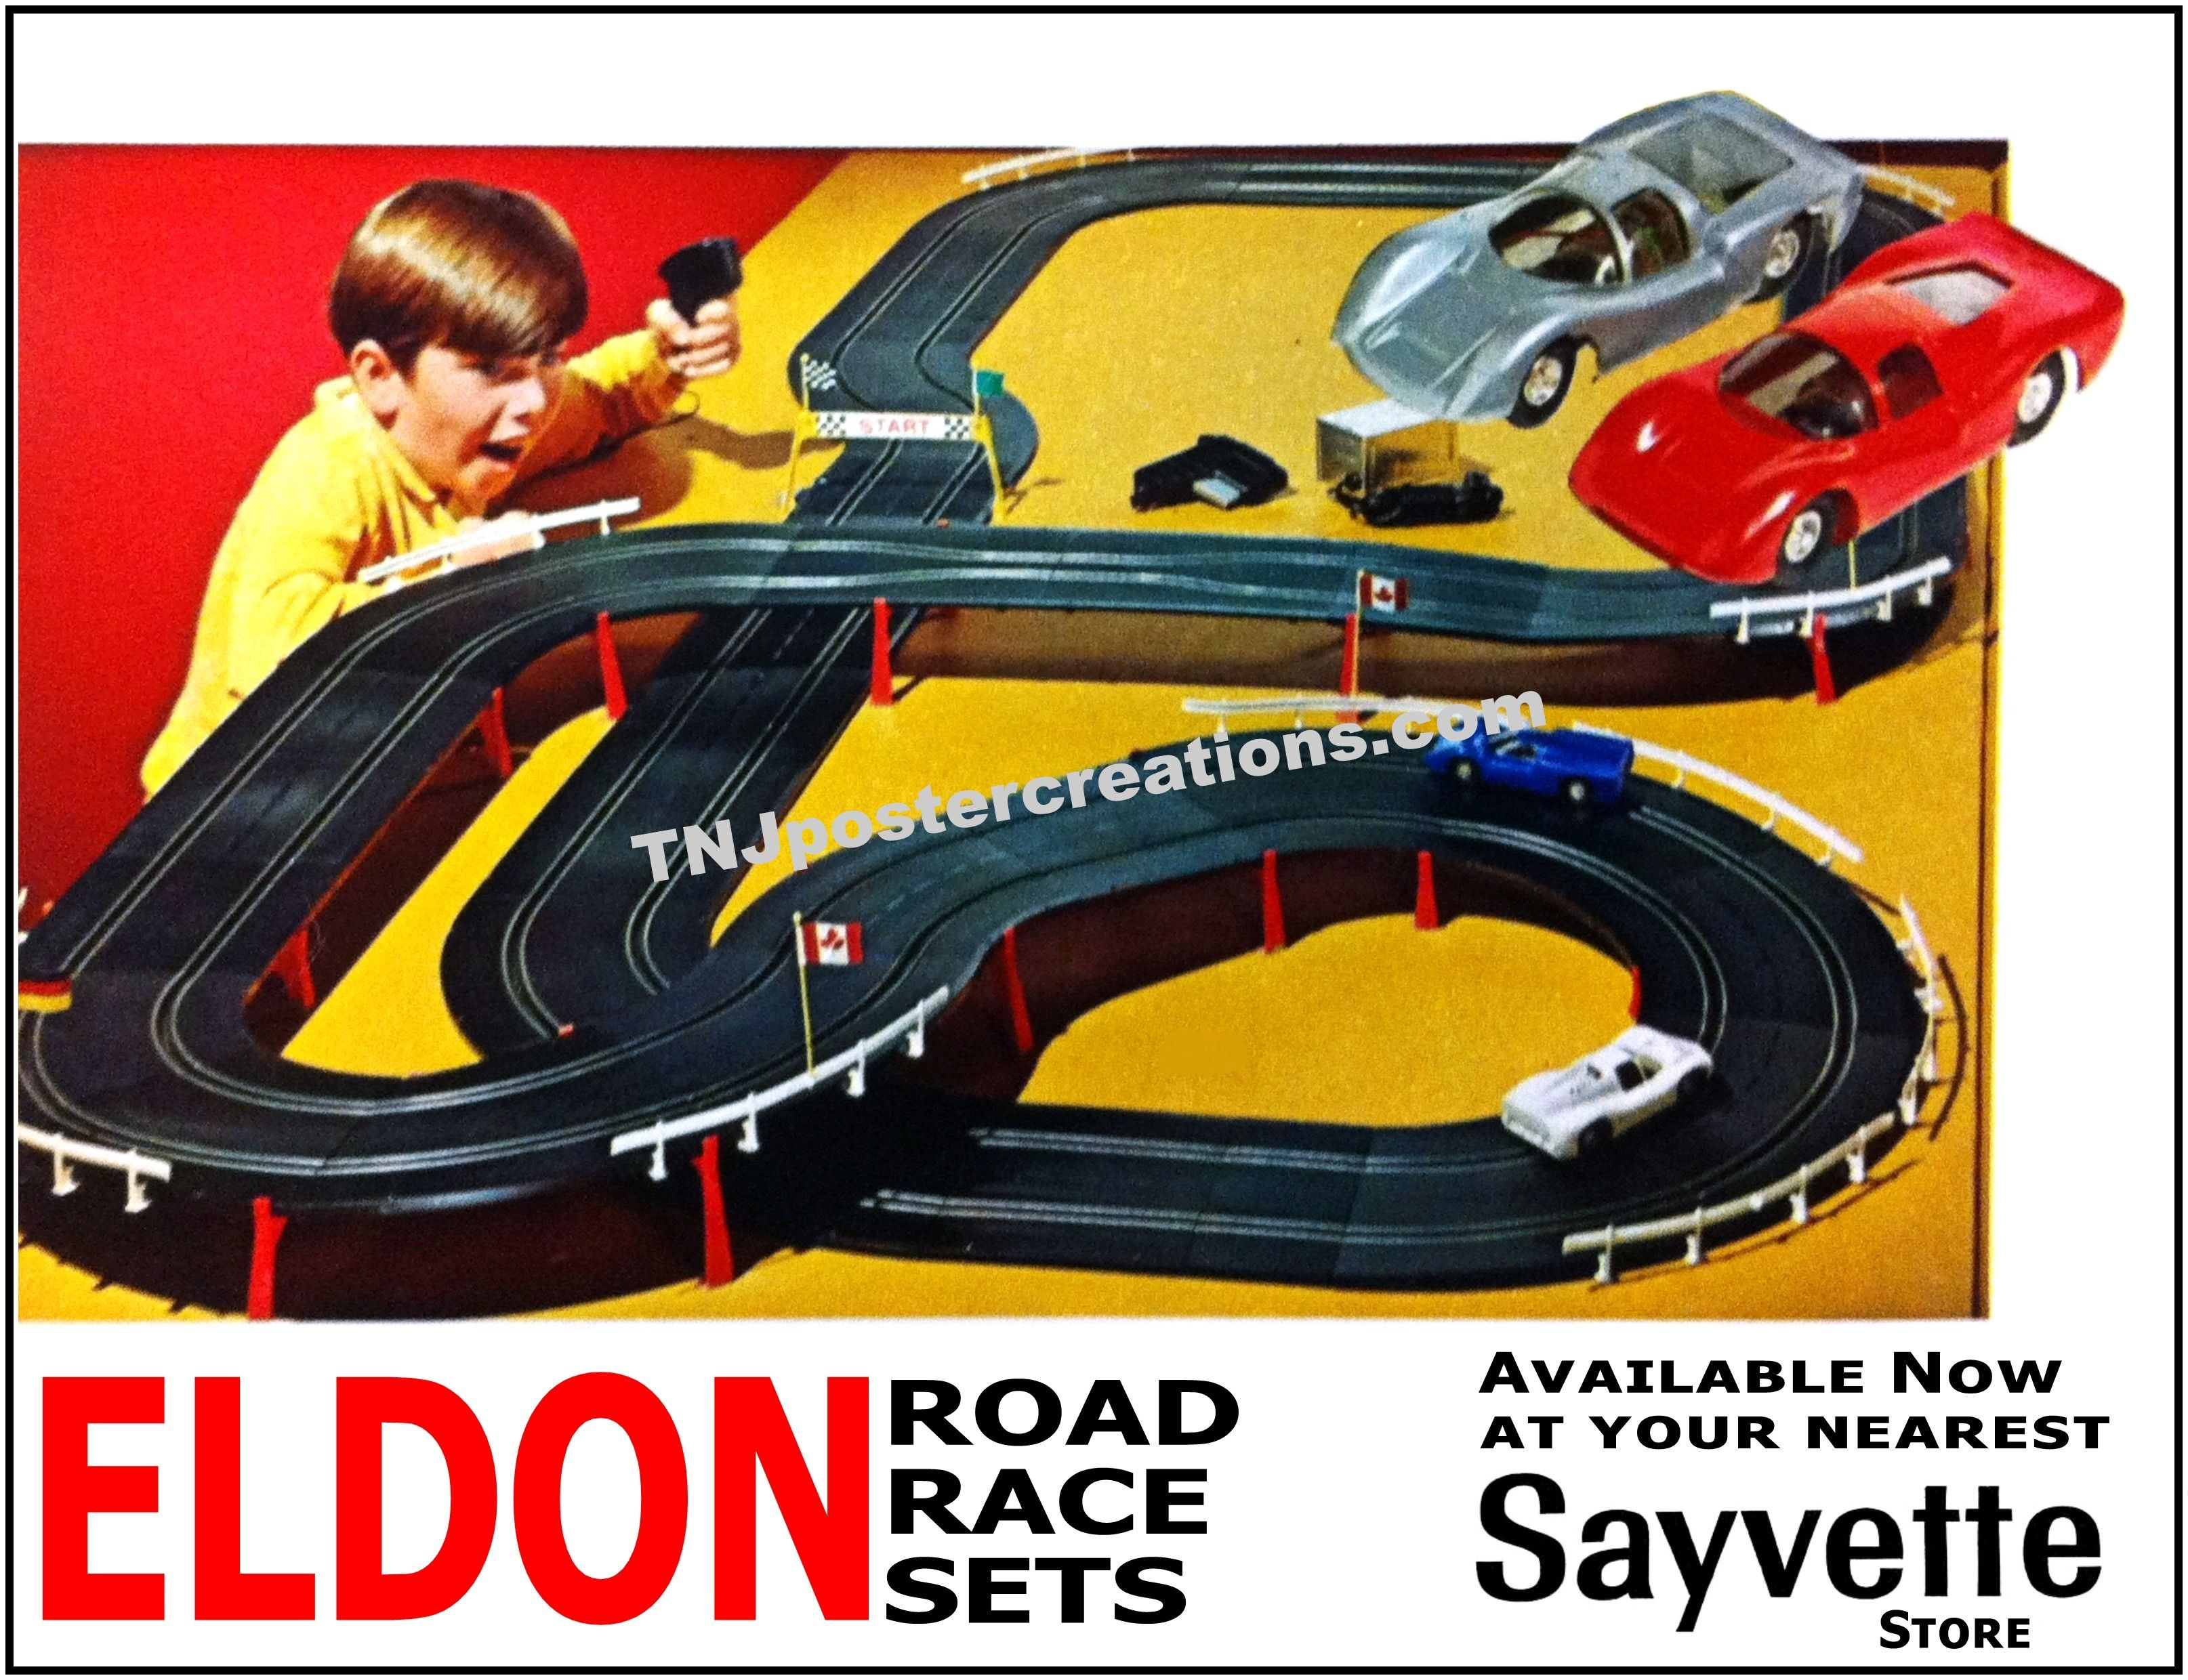 Eldon road race sets, available at Sayvette stores! Courtesy of